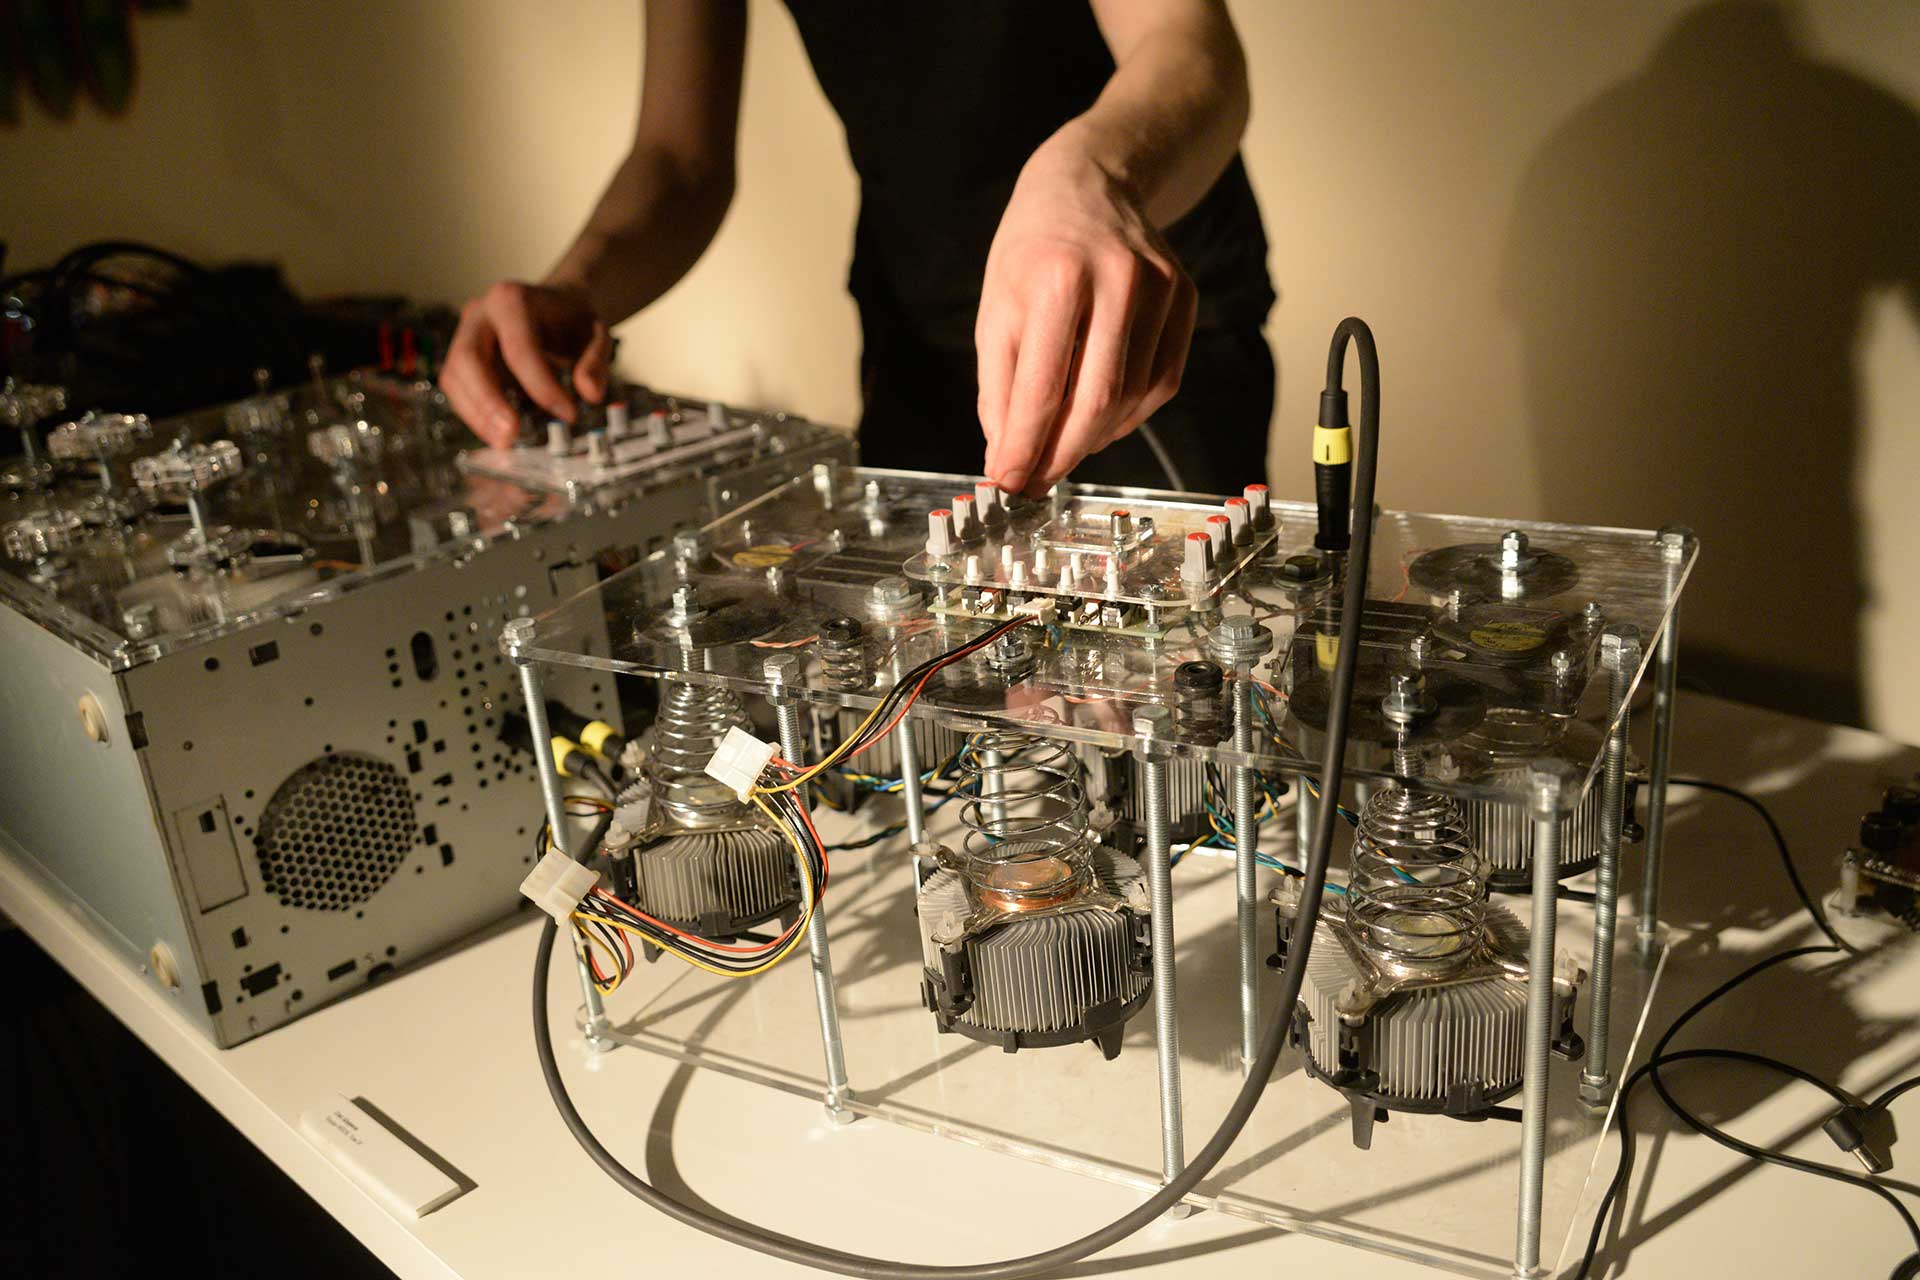 Experimental musical instruments